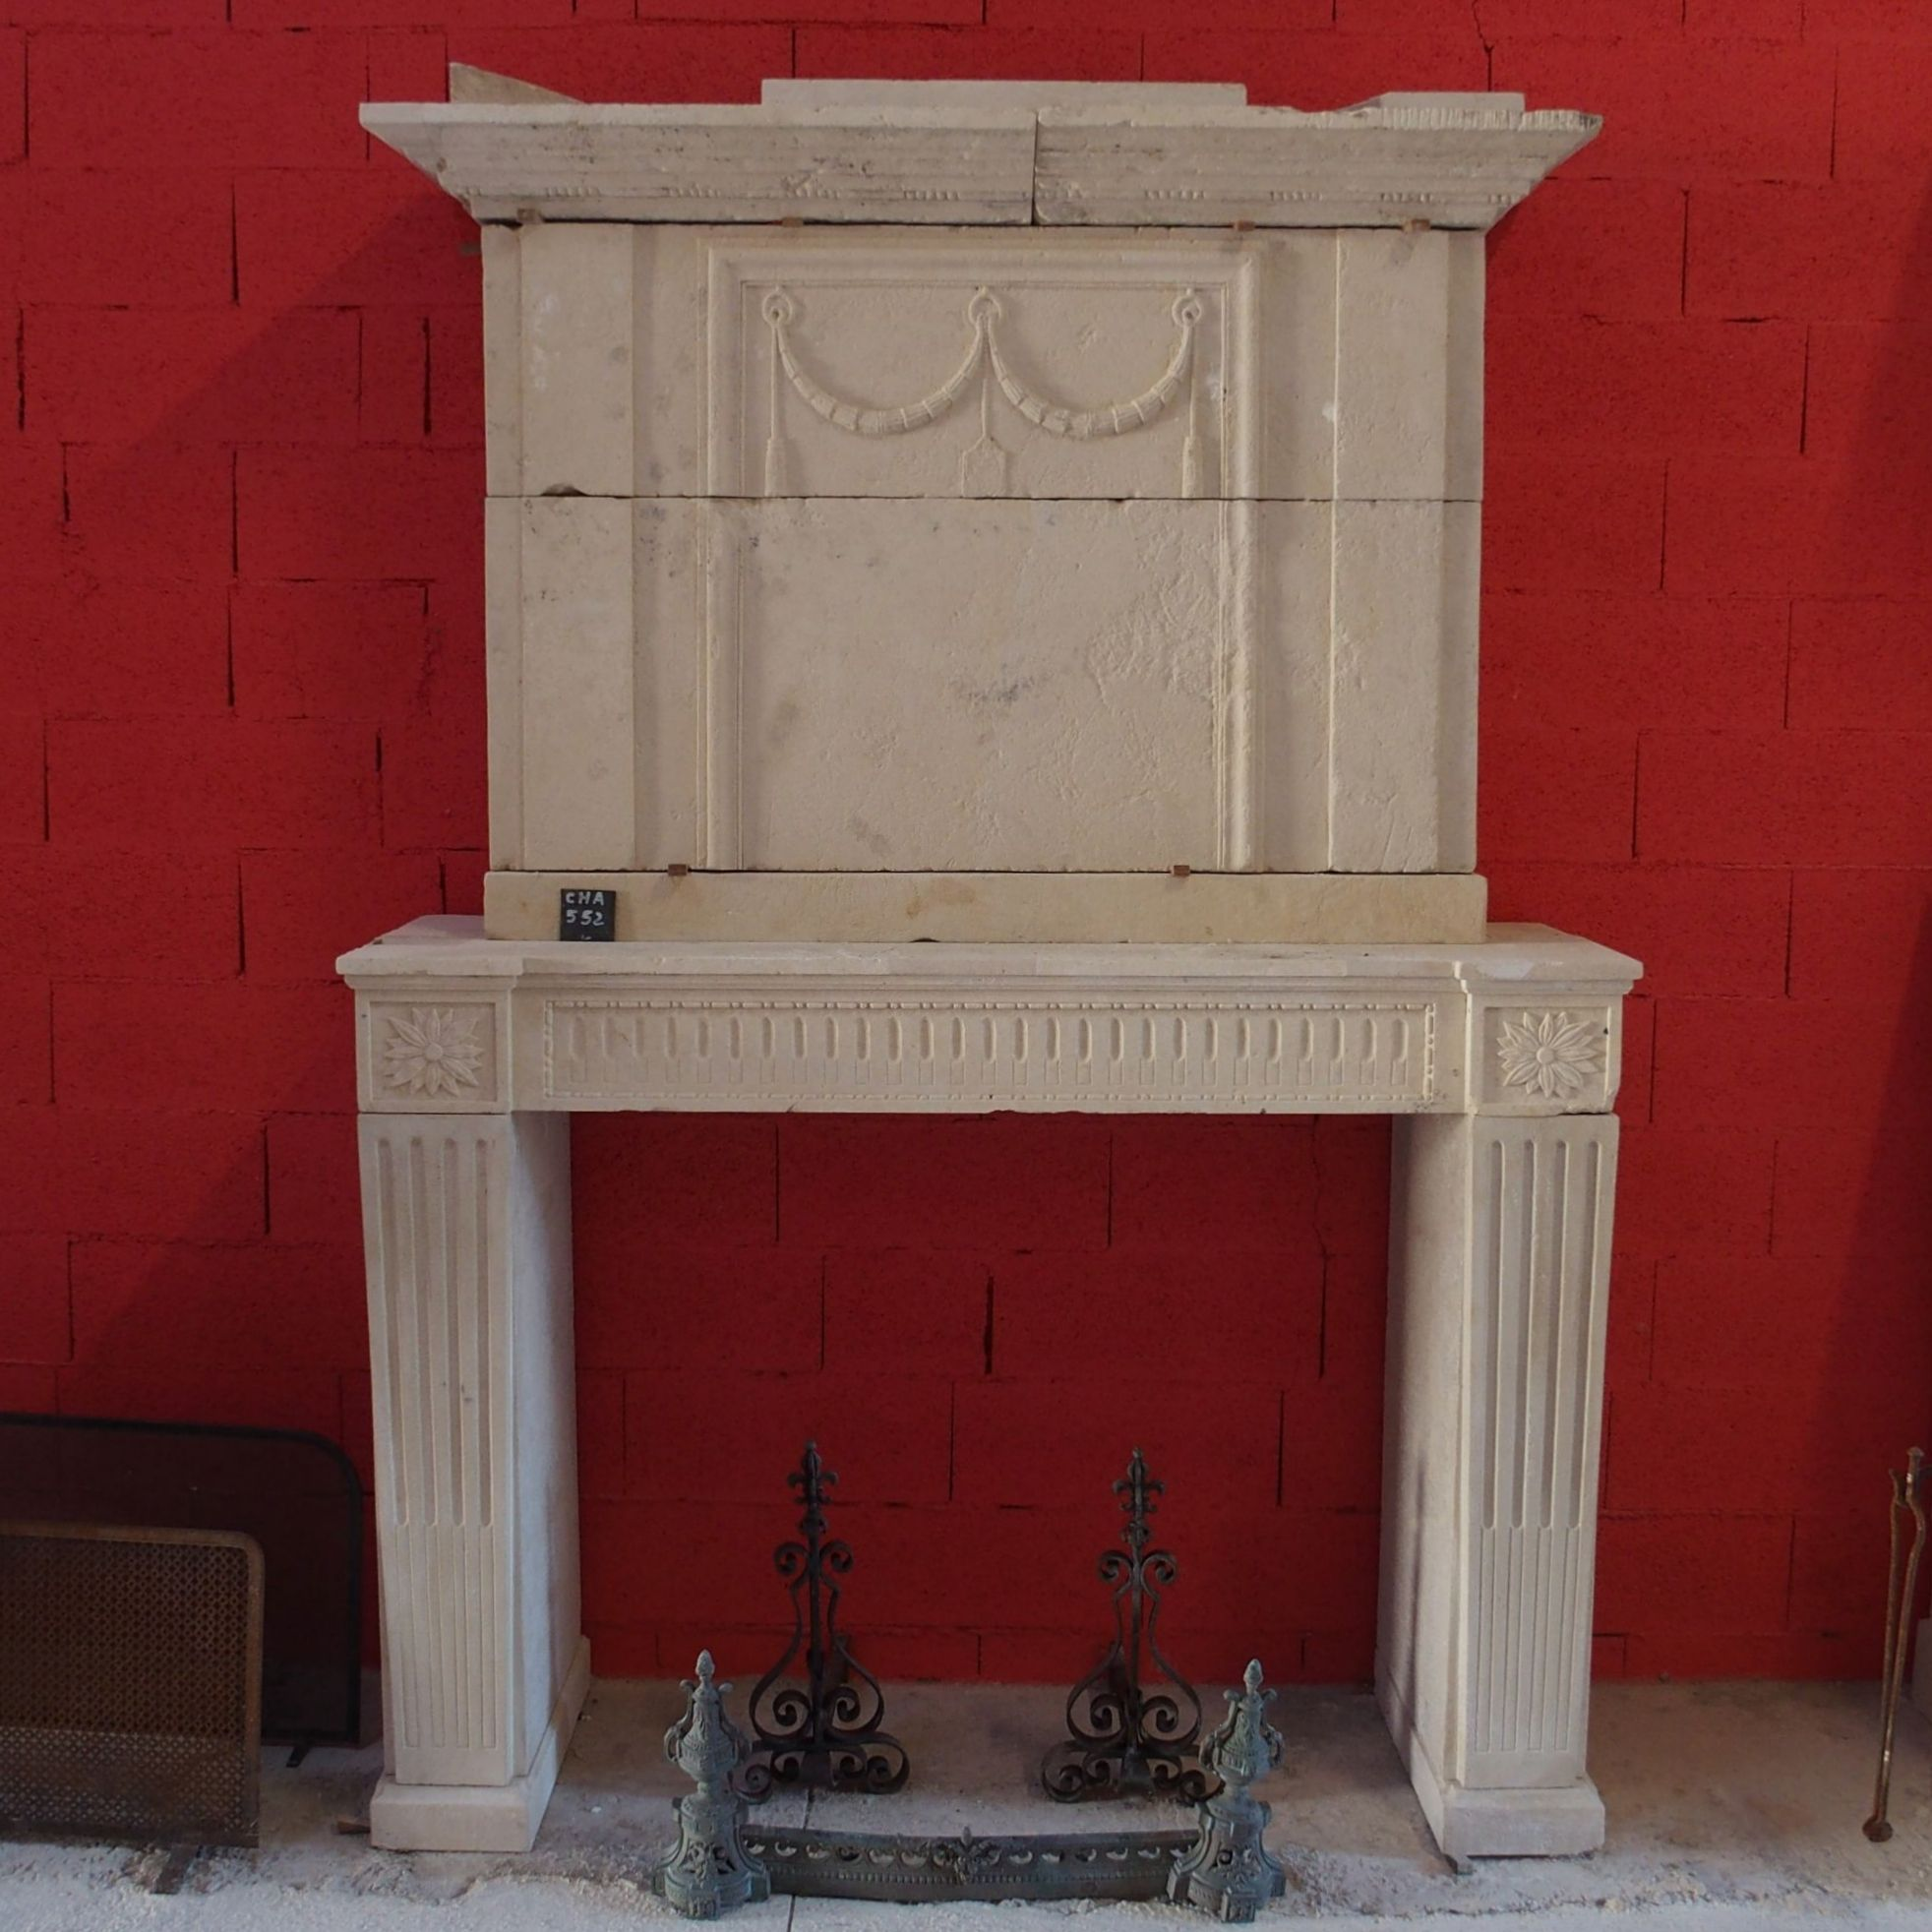 Old fireplace with an overmantle in an yellow-ochre color.